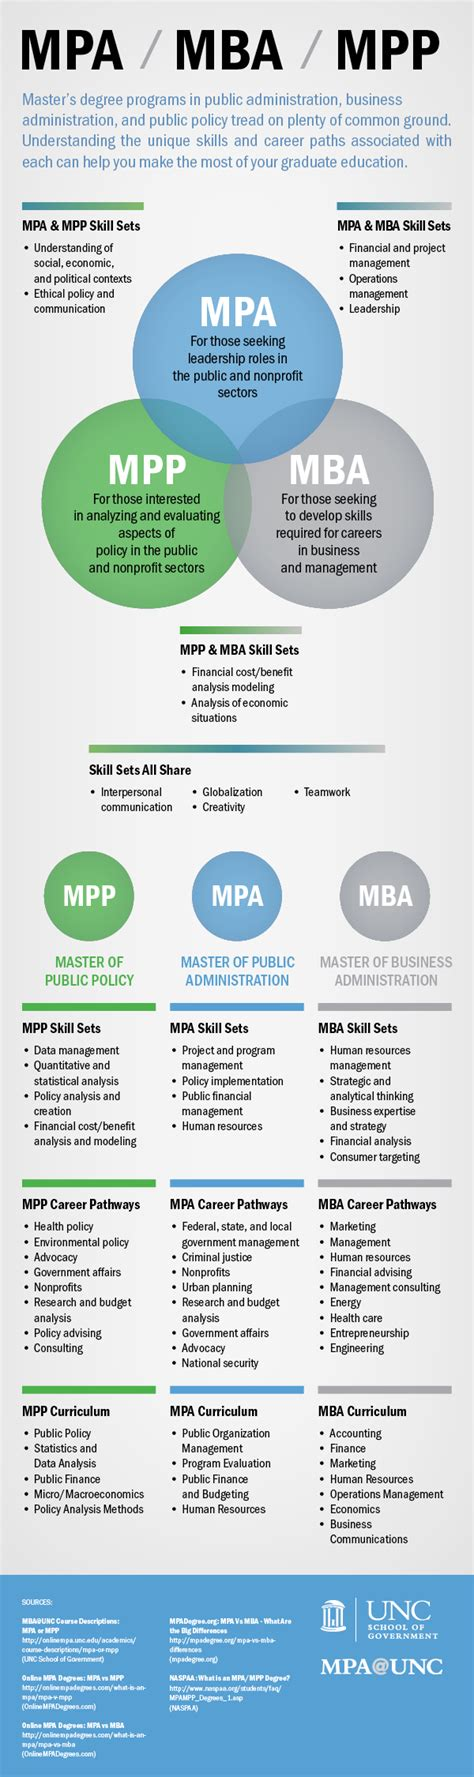 Mba Mpp Harvard Linkedin by Mpa Mpp Or Mba Which Is Right For You Mpa Unc